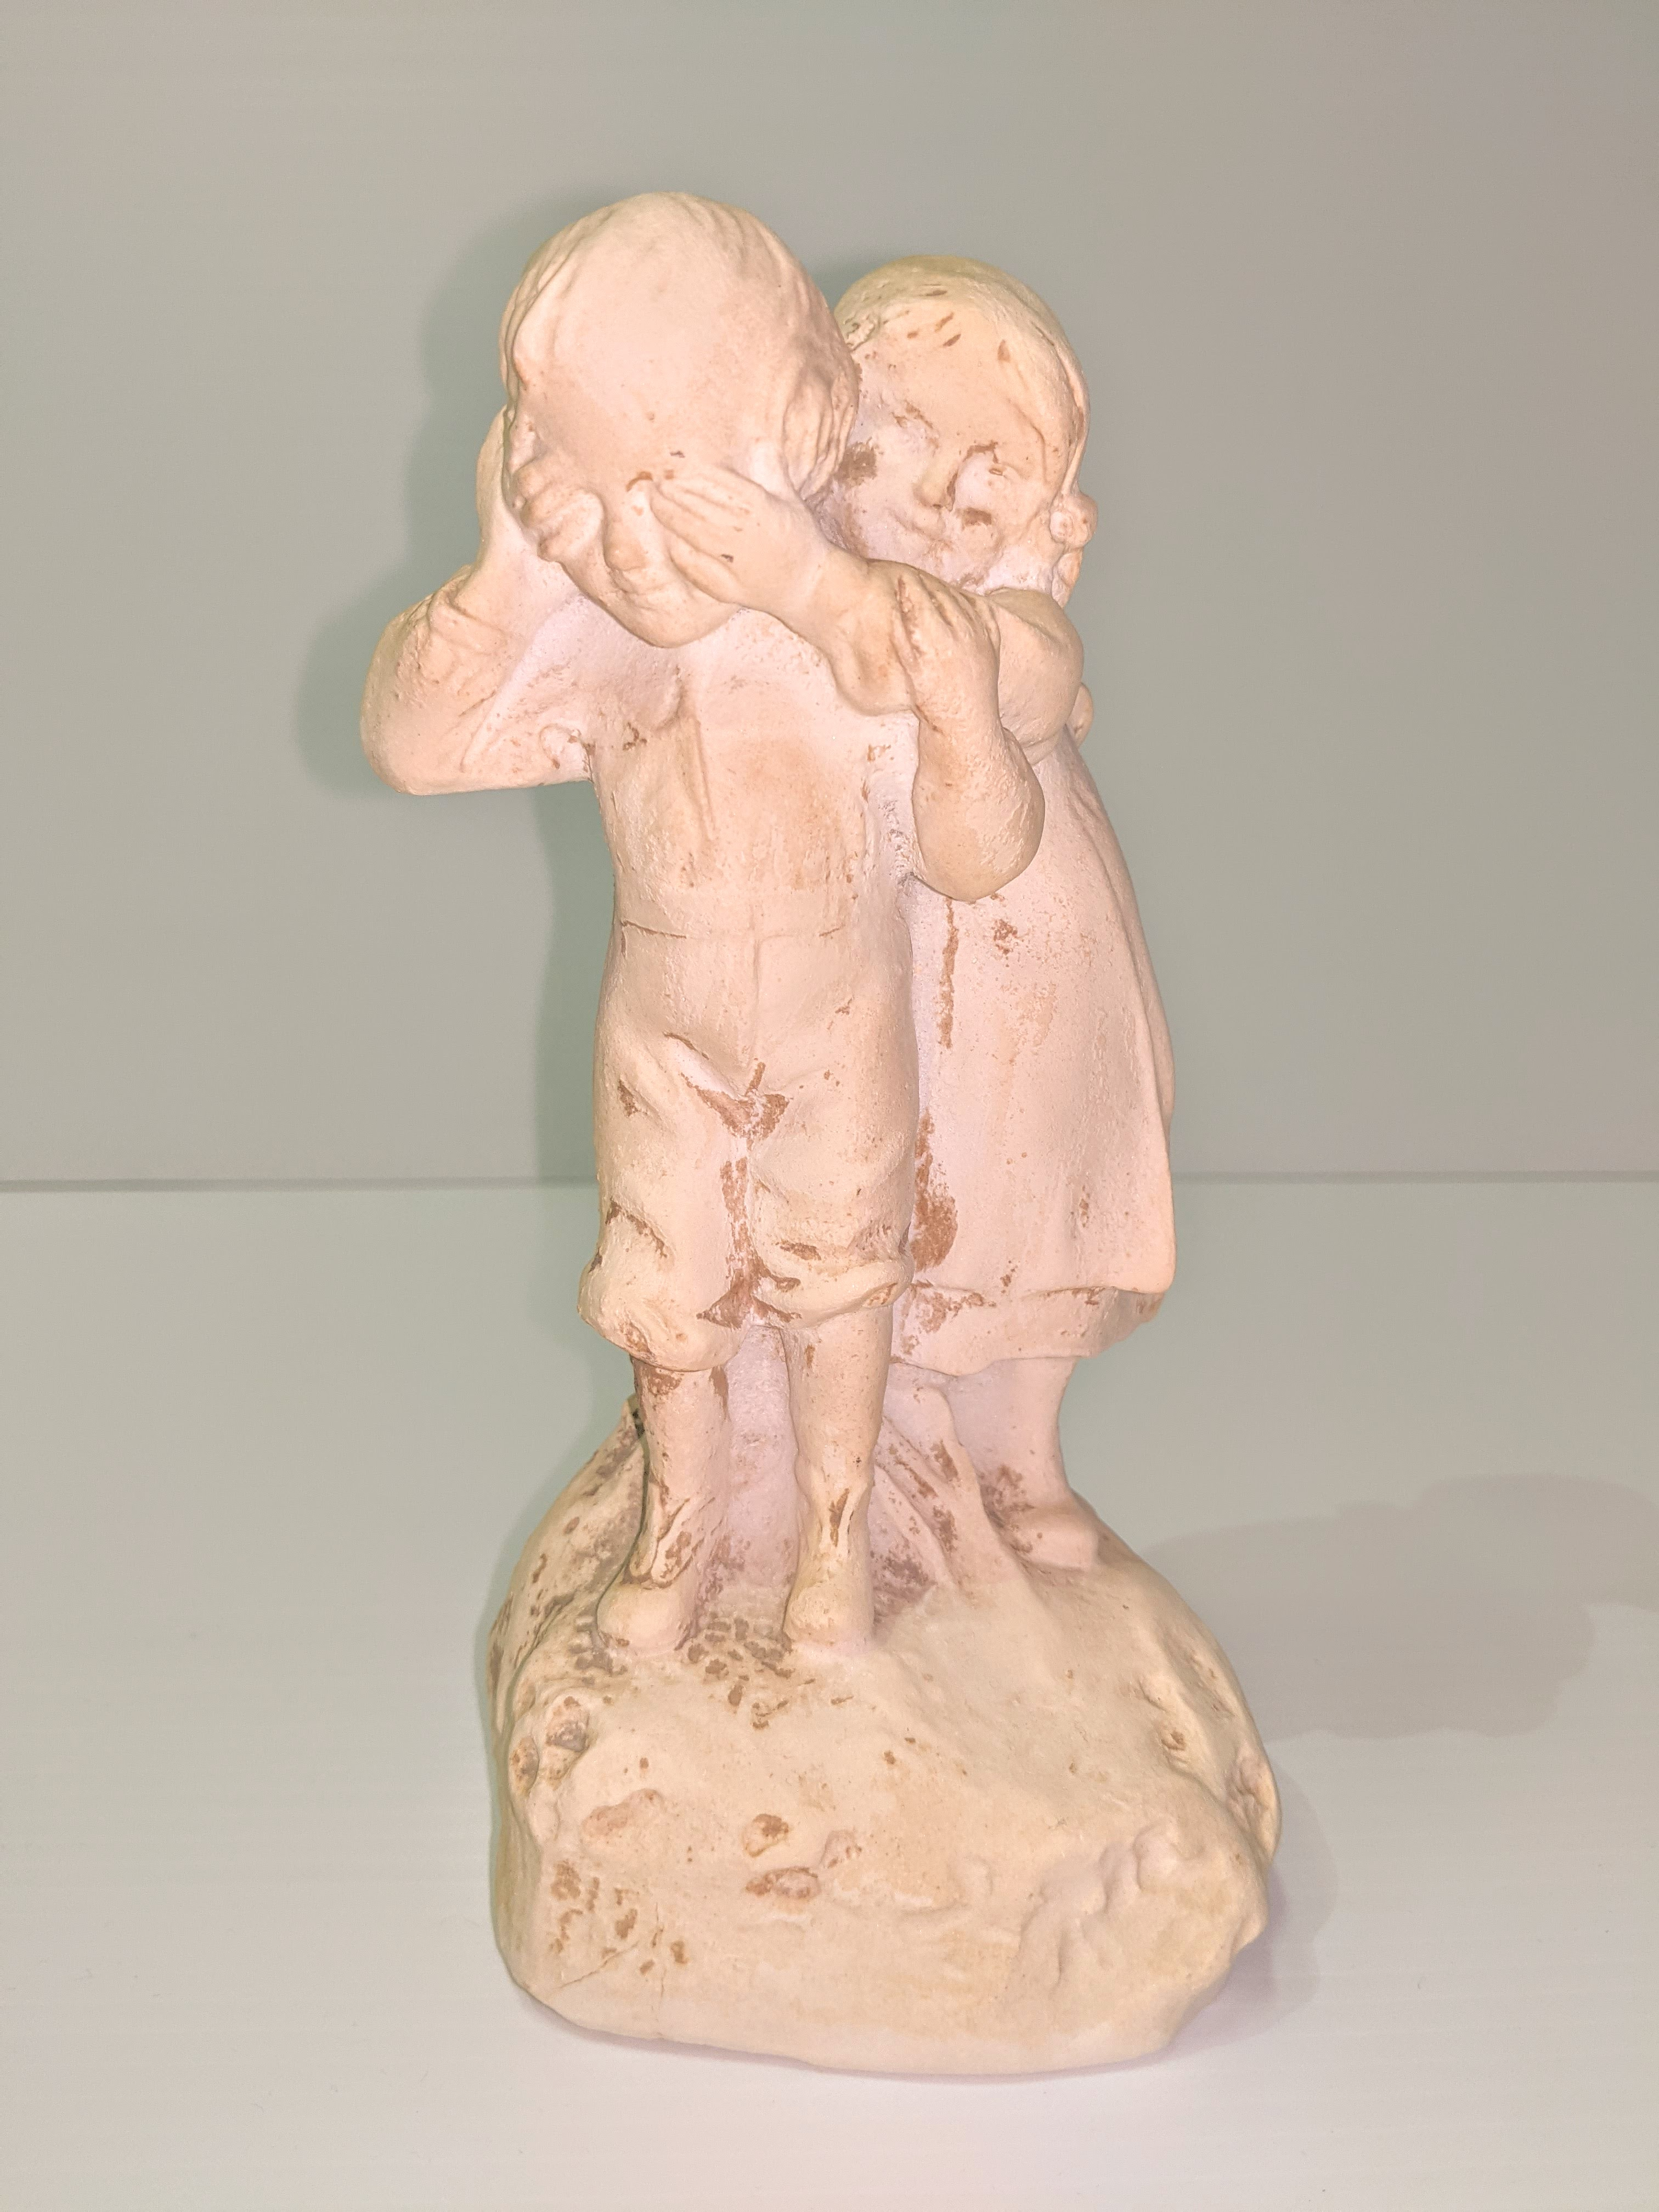 This adorable statue of 2 kids playing was donated to the FVHC by Eunice Hitchcock - who was a teacher in Fort Vermilion for many years. The statues main unique feature is its medium - it's made of salt! We would love to know how that process works, please contact us if you have more information on it - or have connections to Eunice!  22/2/2021 1999.03.98 / Hitchcock, Eunice